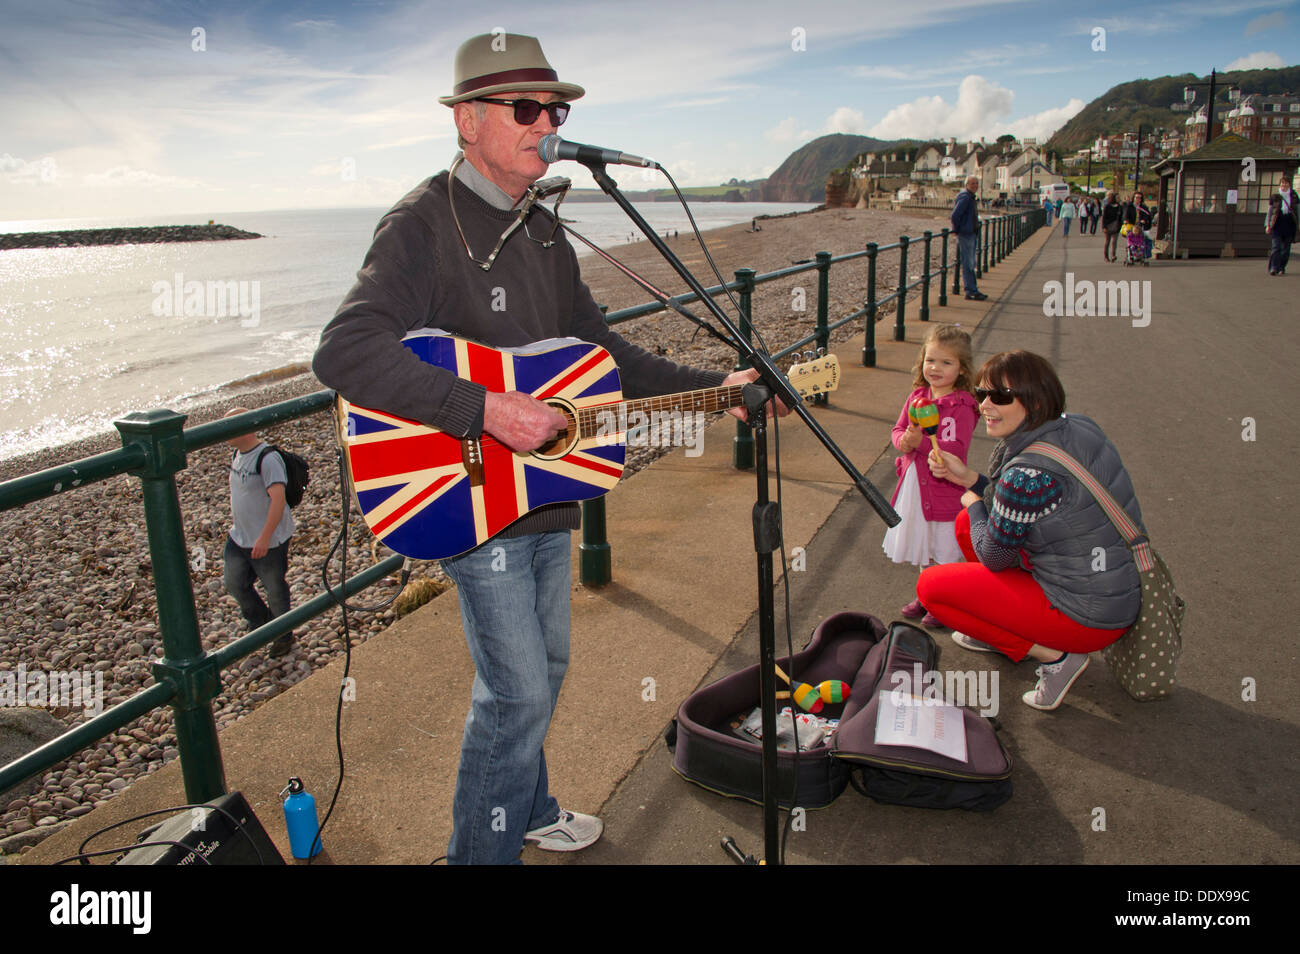 Sidmouth,Devonshire,UK,a seaside town on the South Coast with a promenade and beach,busker and beached boats.a UK sea coast - Stock Image